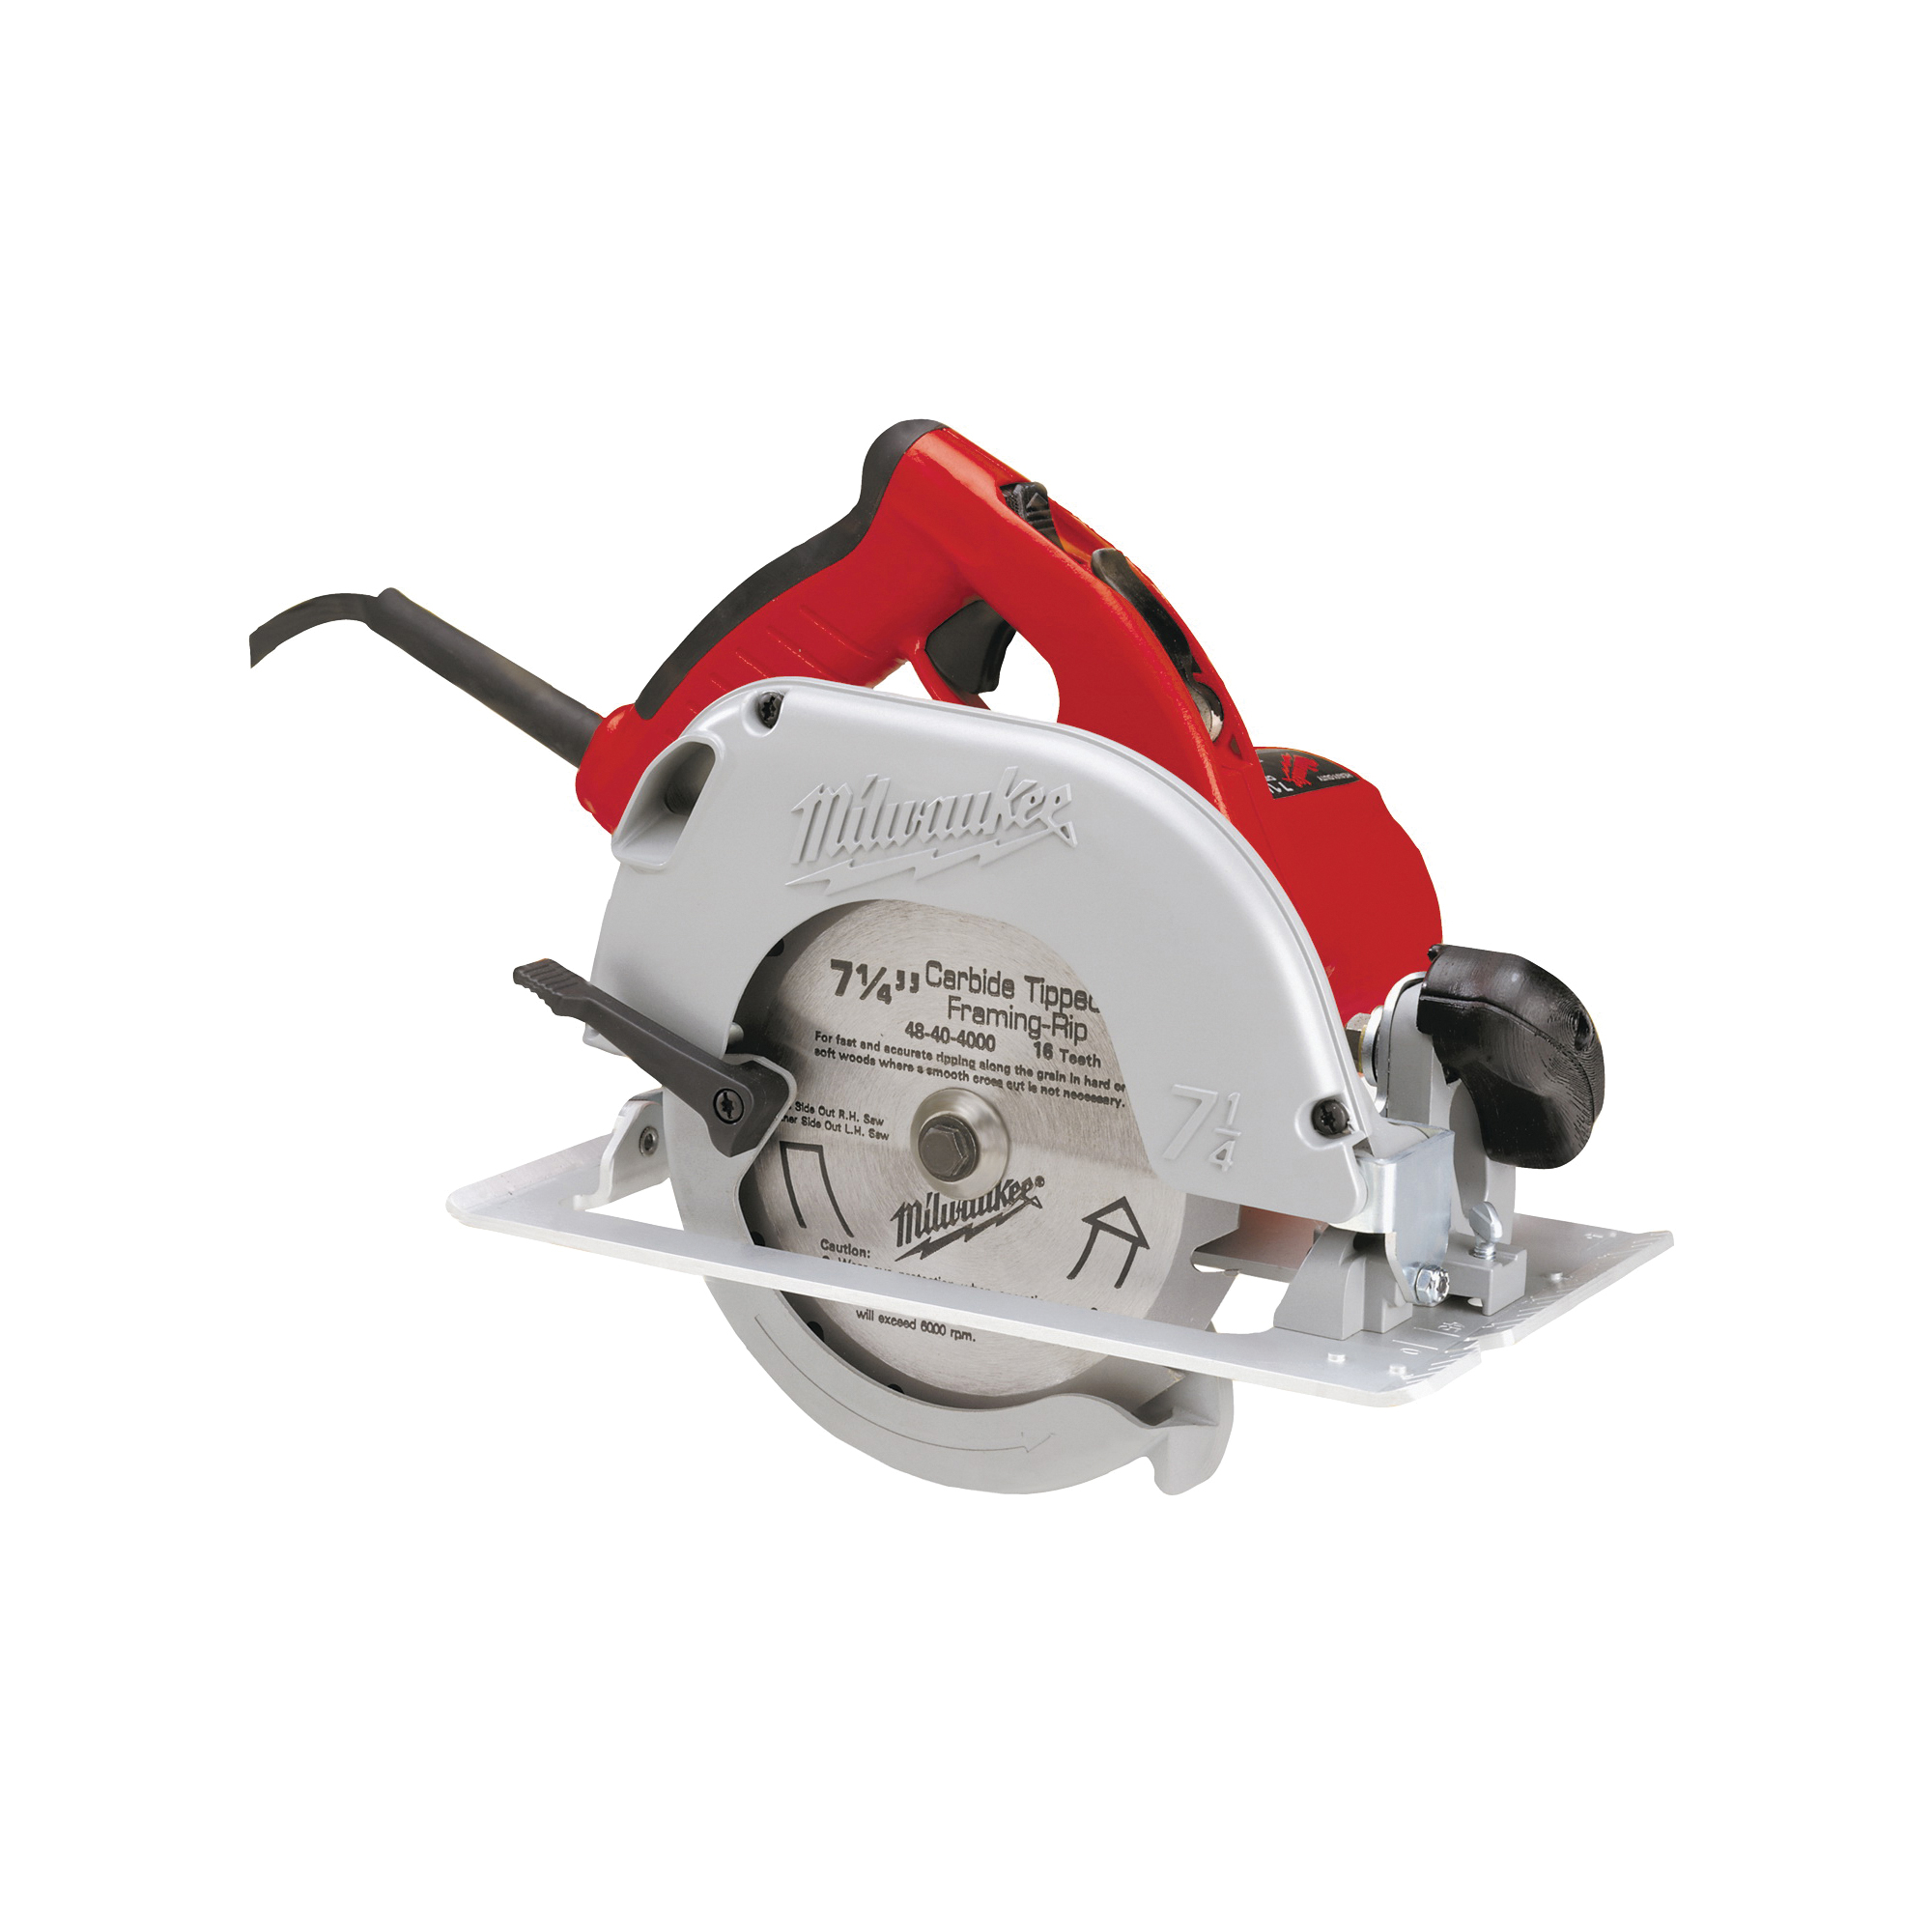 Picture of Milwaukee 6390-21 Circular Saw, 120 V, 15 A, 1800 W, 7-1/4 in Dia Blade, 5/8 in Arbor, 50 deg Bevel